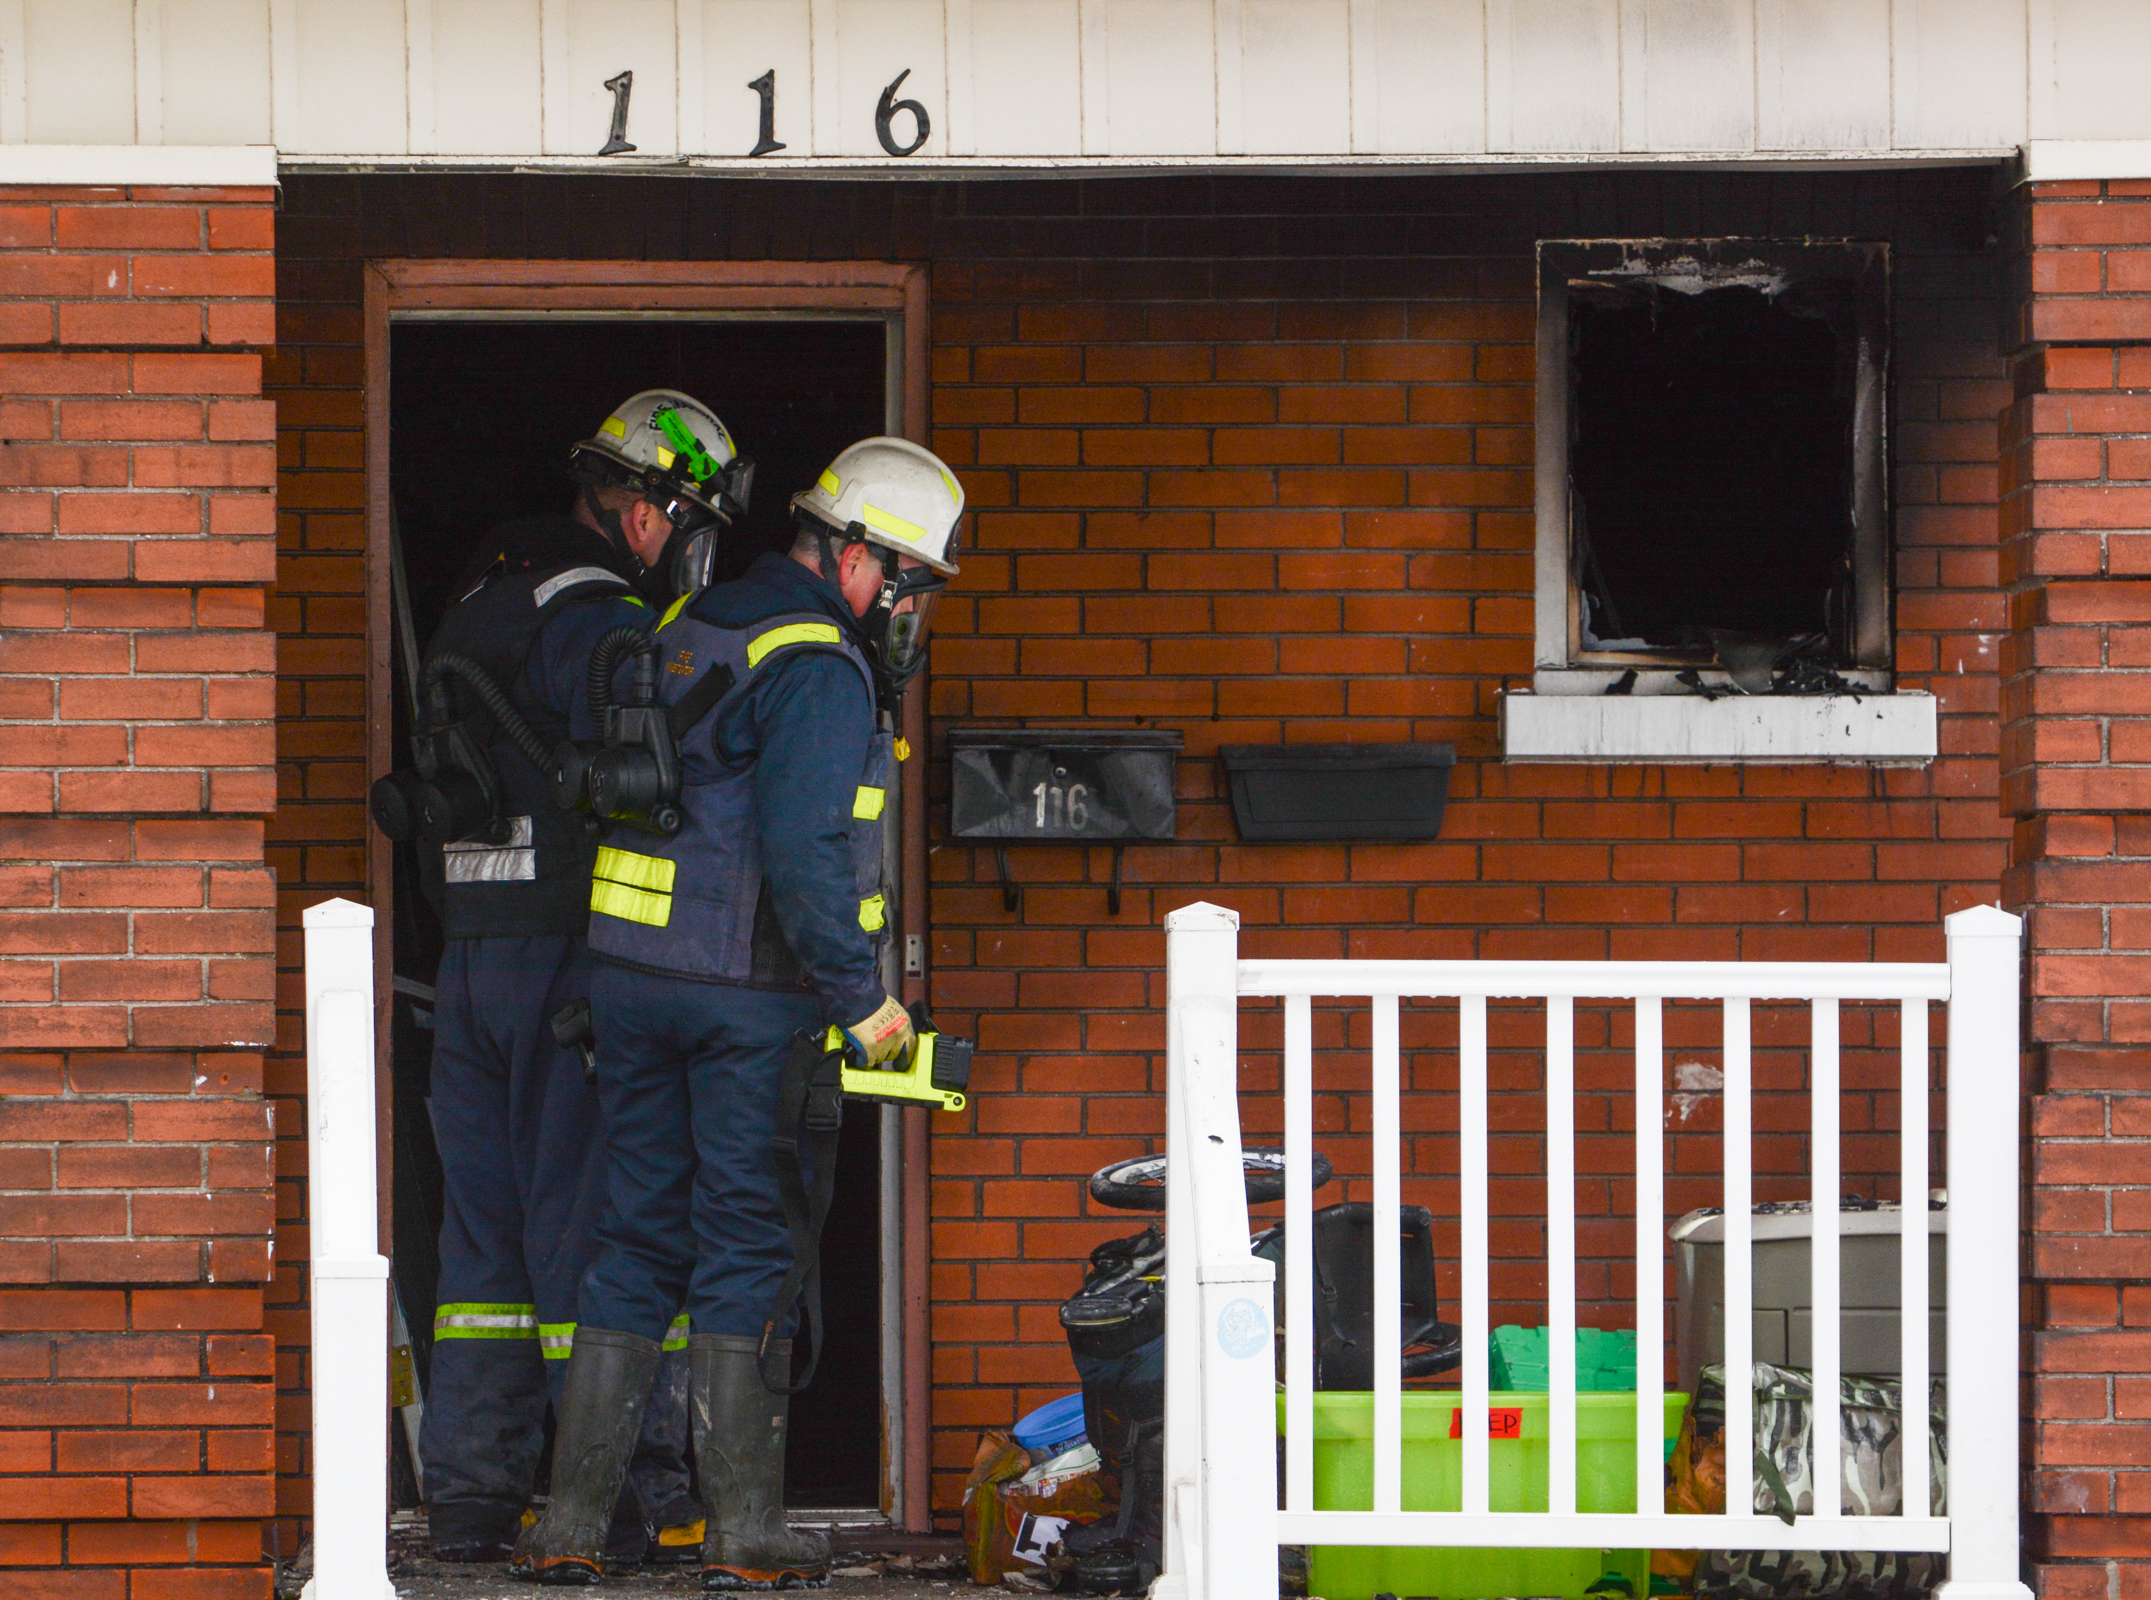 House did not need to be registered in system, city says -